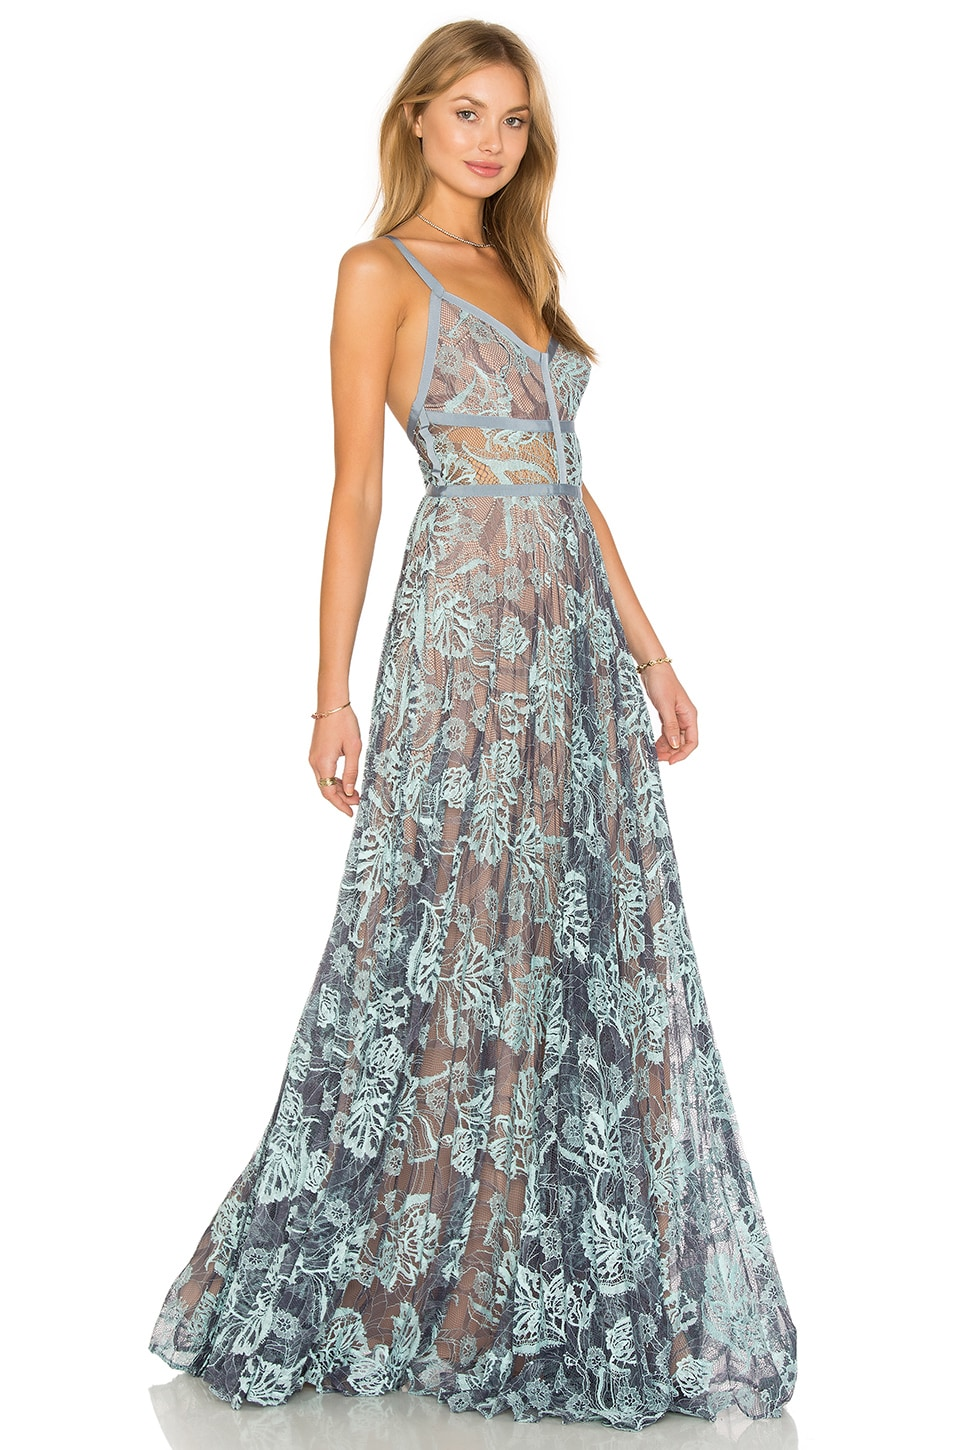 00dc9ff5 Alexis Isabella Gown in Light Blue Lace | REVOLVE